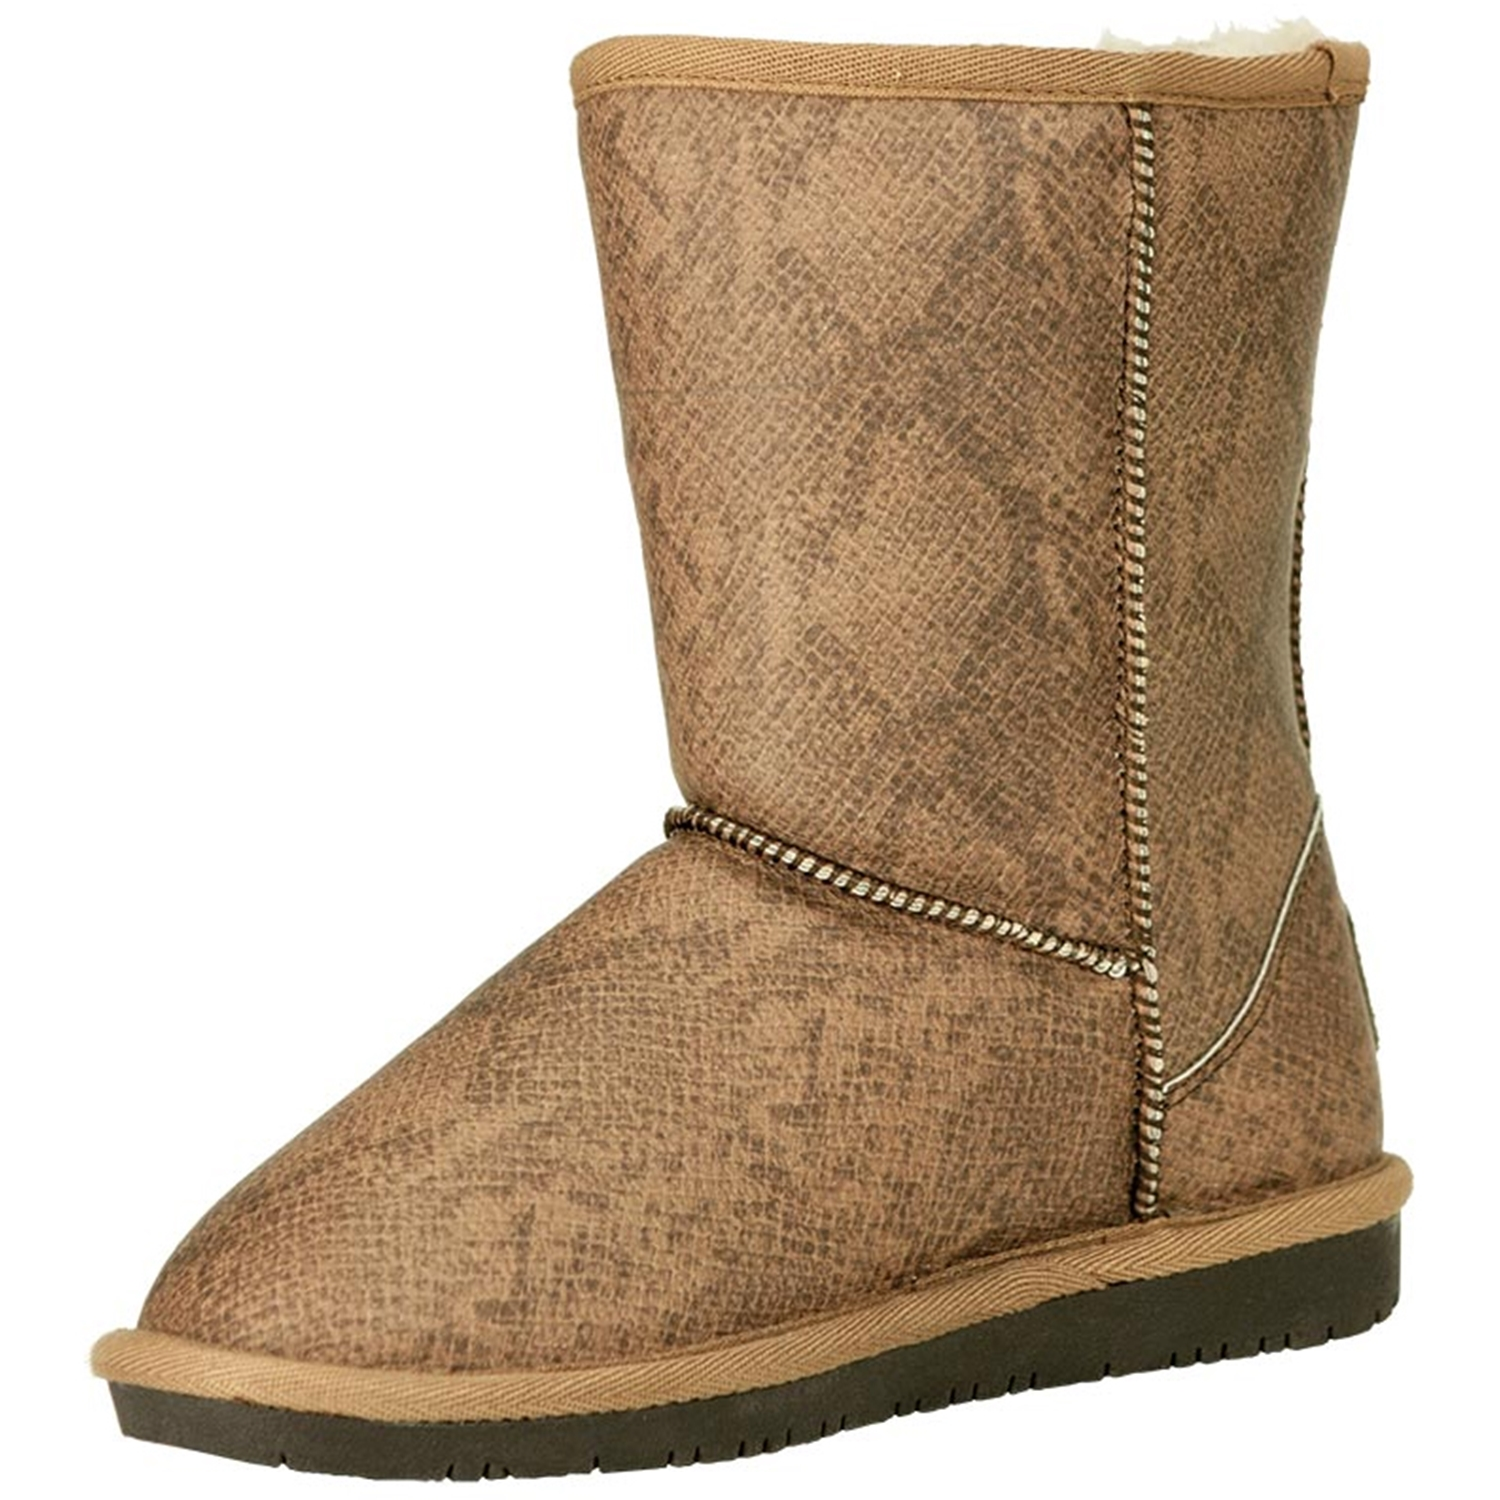 Bearpaw Women's Emma Short Dark Snake Print Ankle-High Suede Boot - 11M